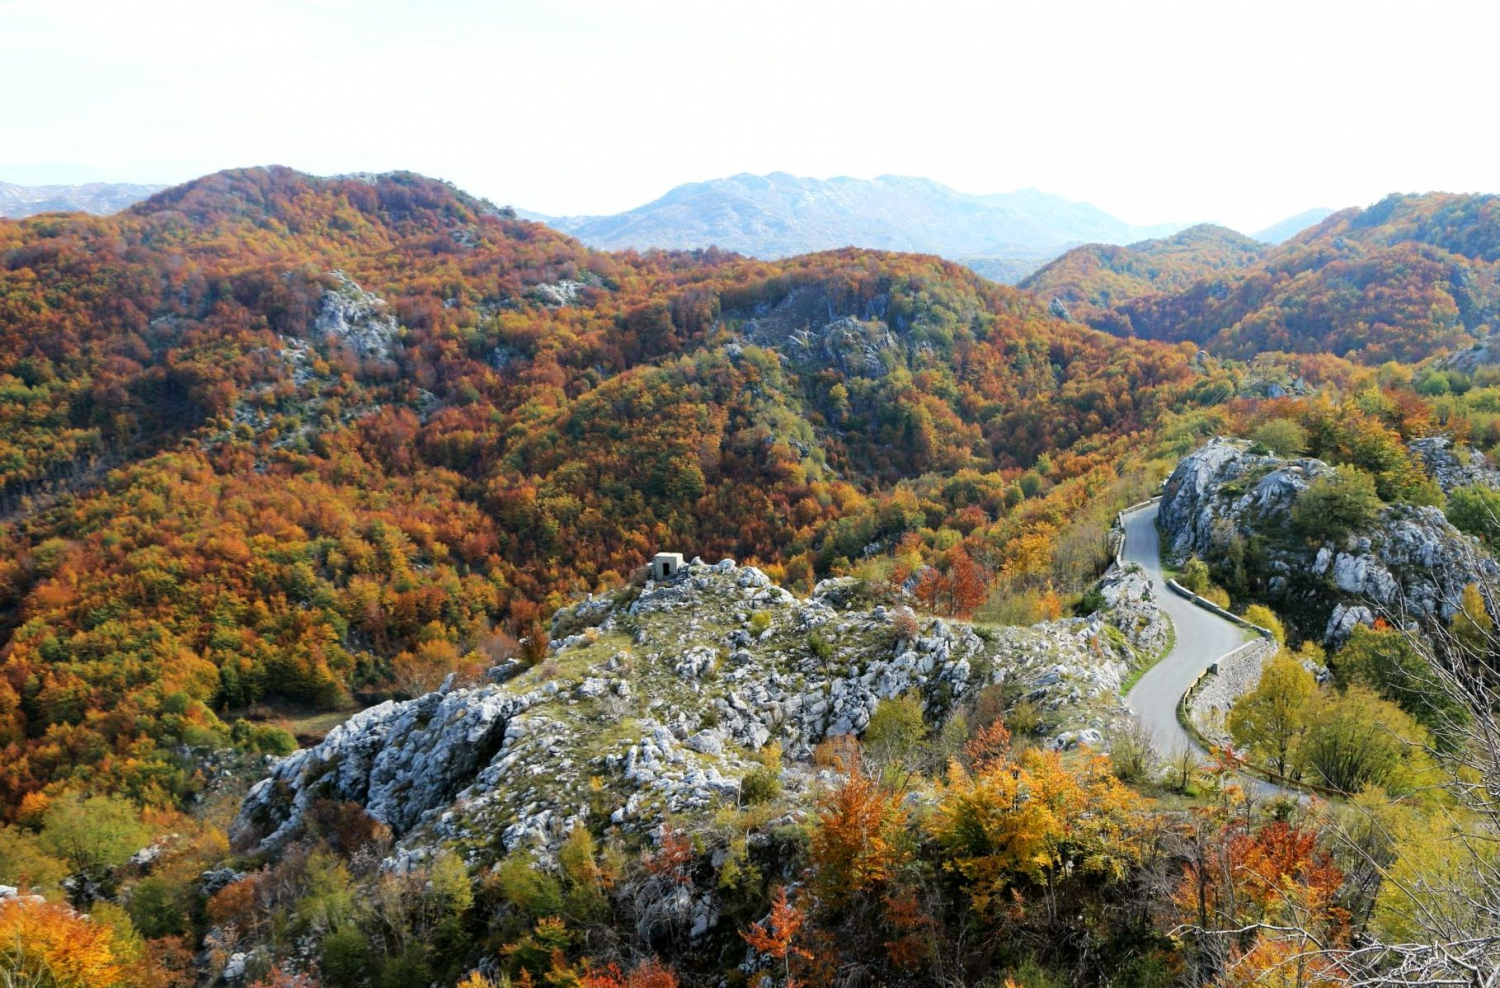 5 Things You Shouldn't Miss at Lovćen National Park